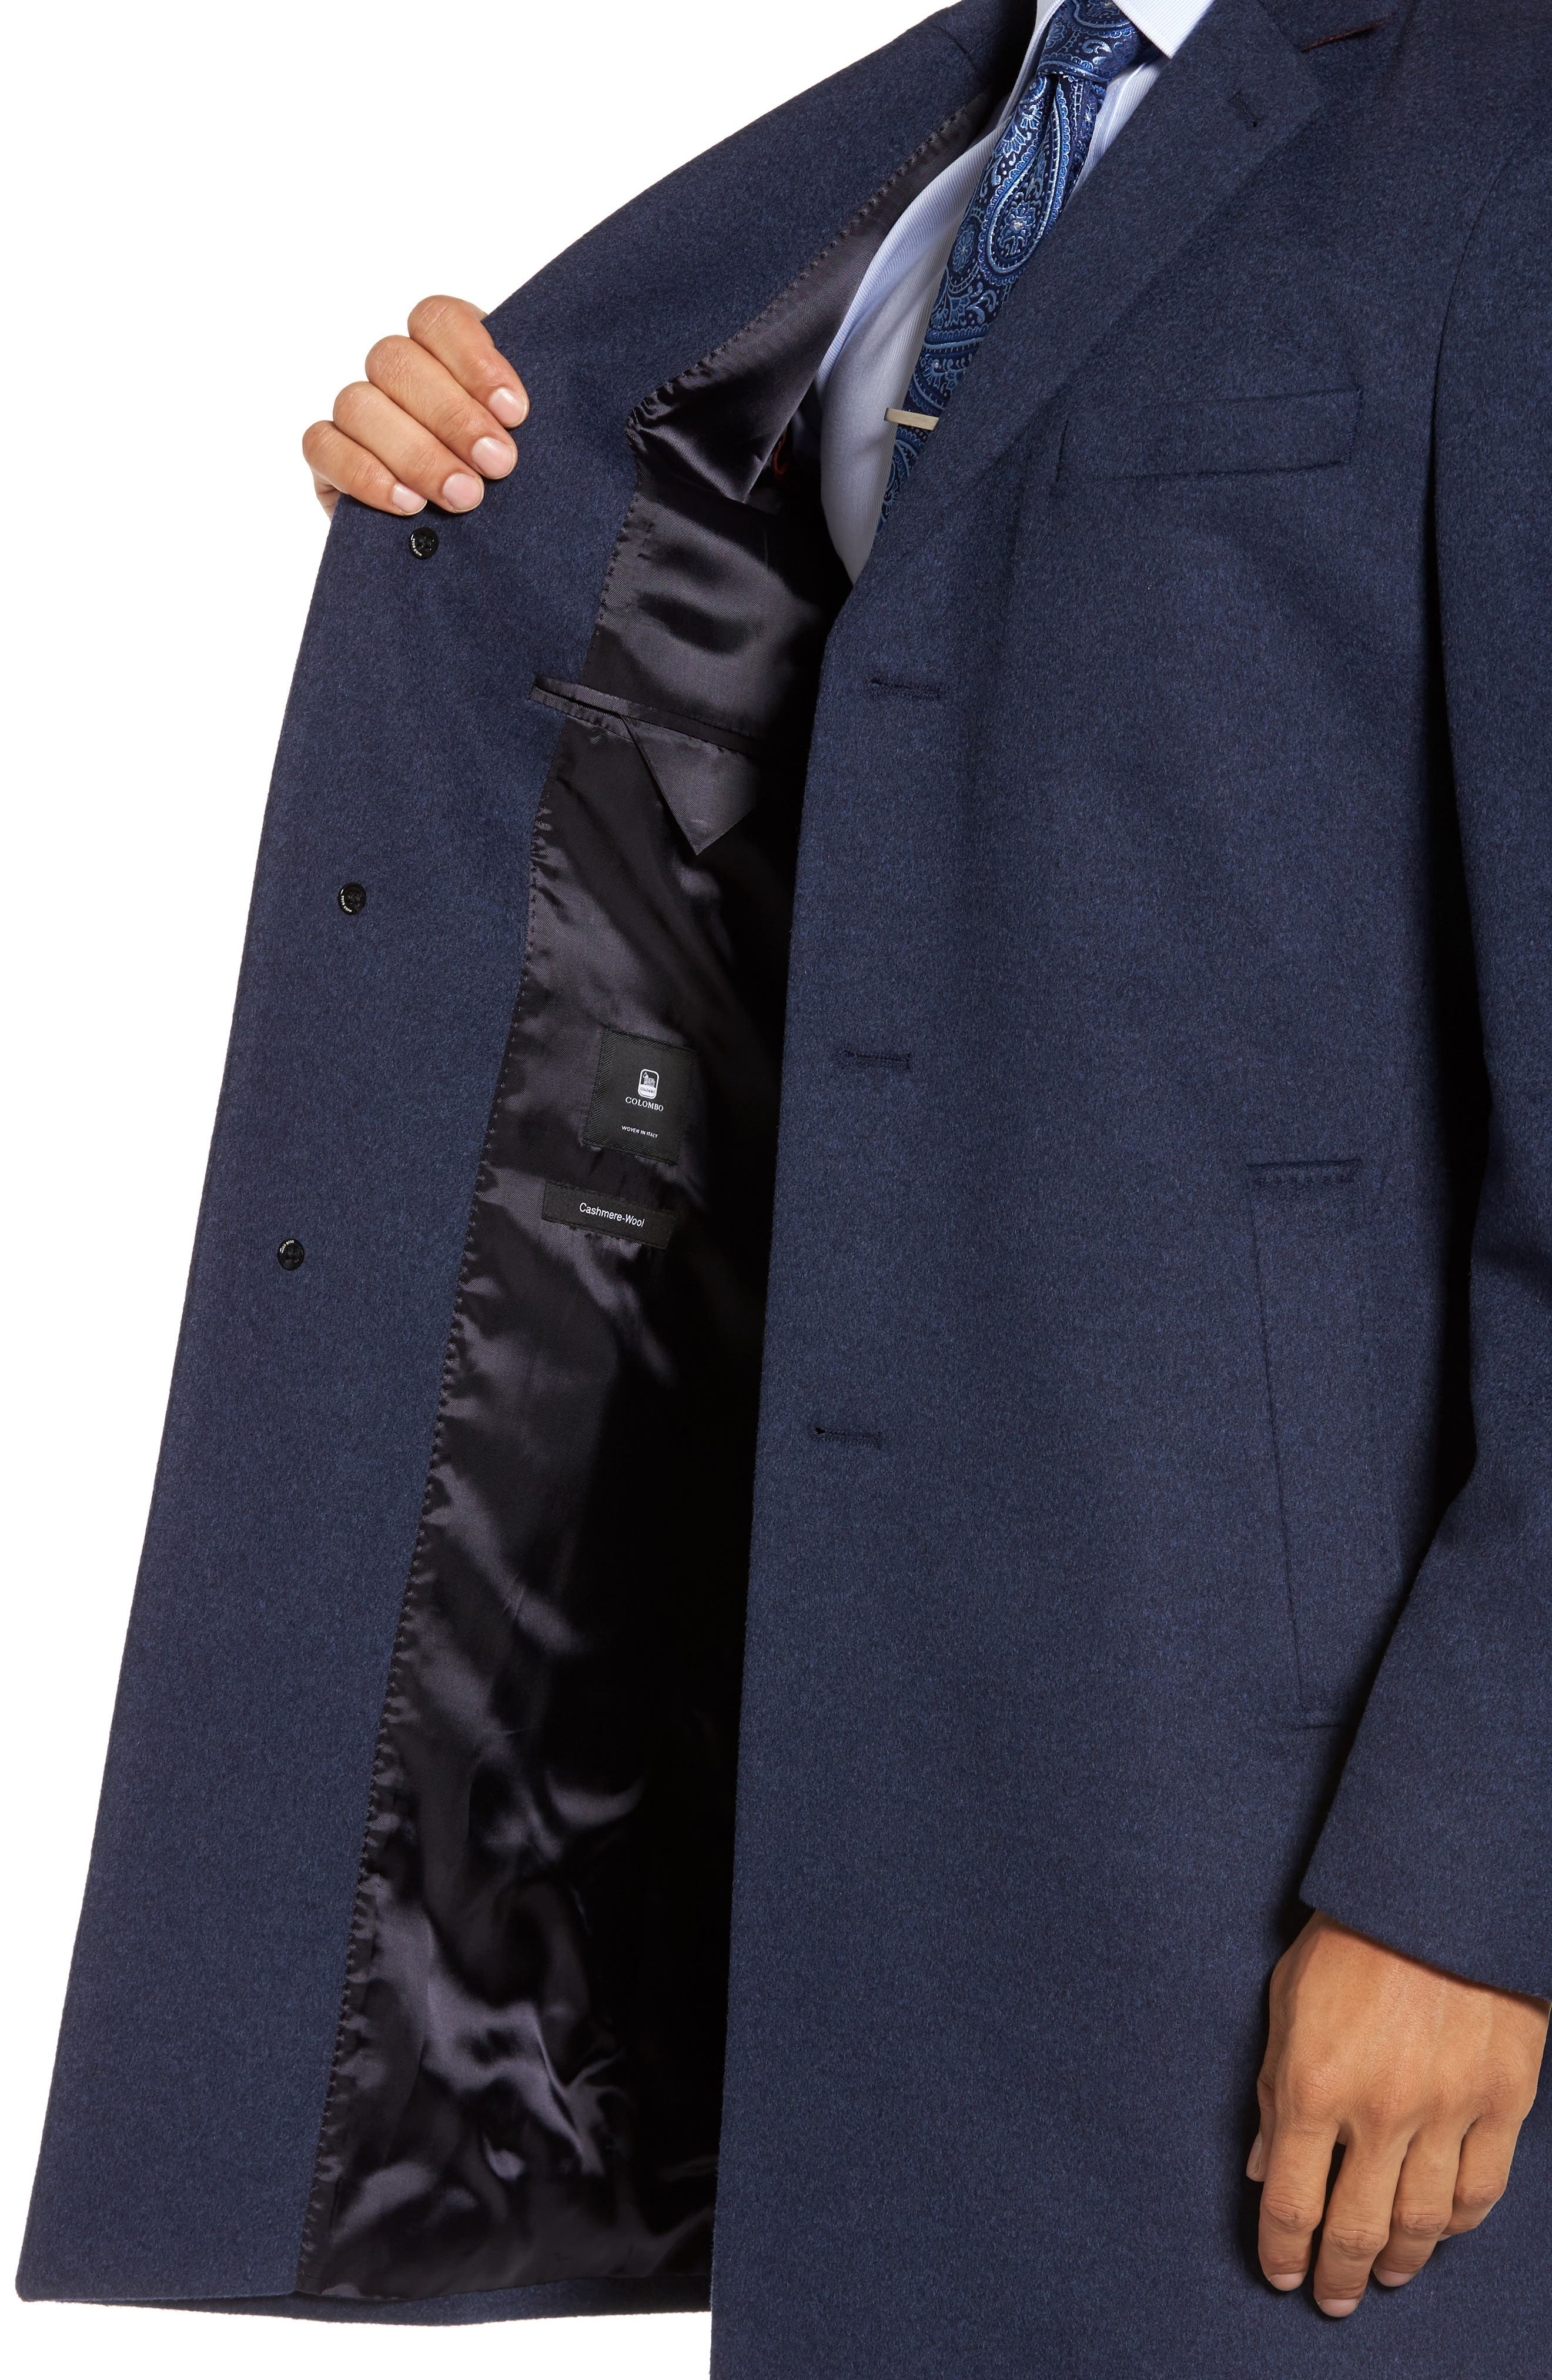 Nye Wool & Cashmere Topcoat,                             Alternate thumbnail 3, color,                             430